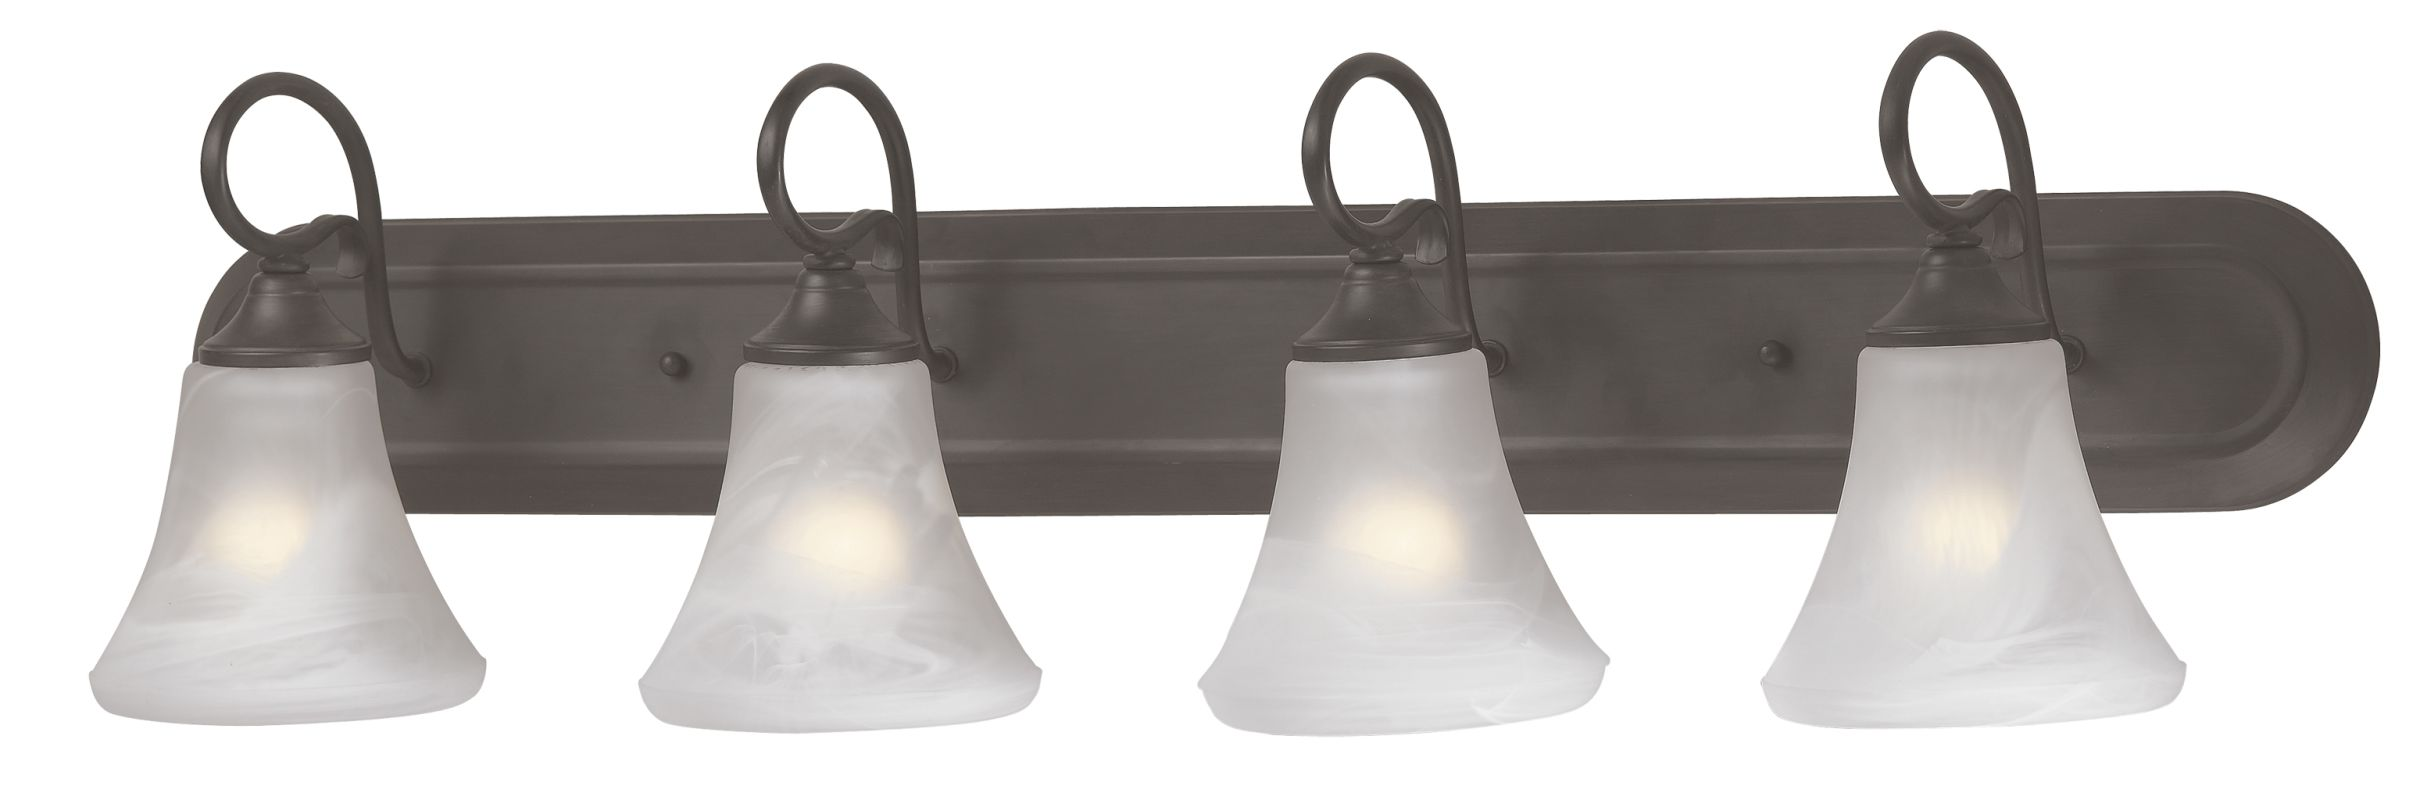 "Thomas Lighting SL7444 4 Light 36"" Wide Bathroom Fixture from the"